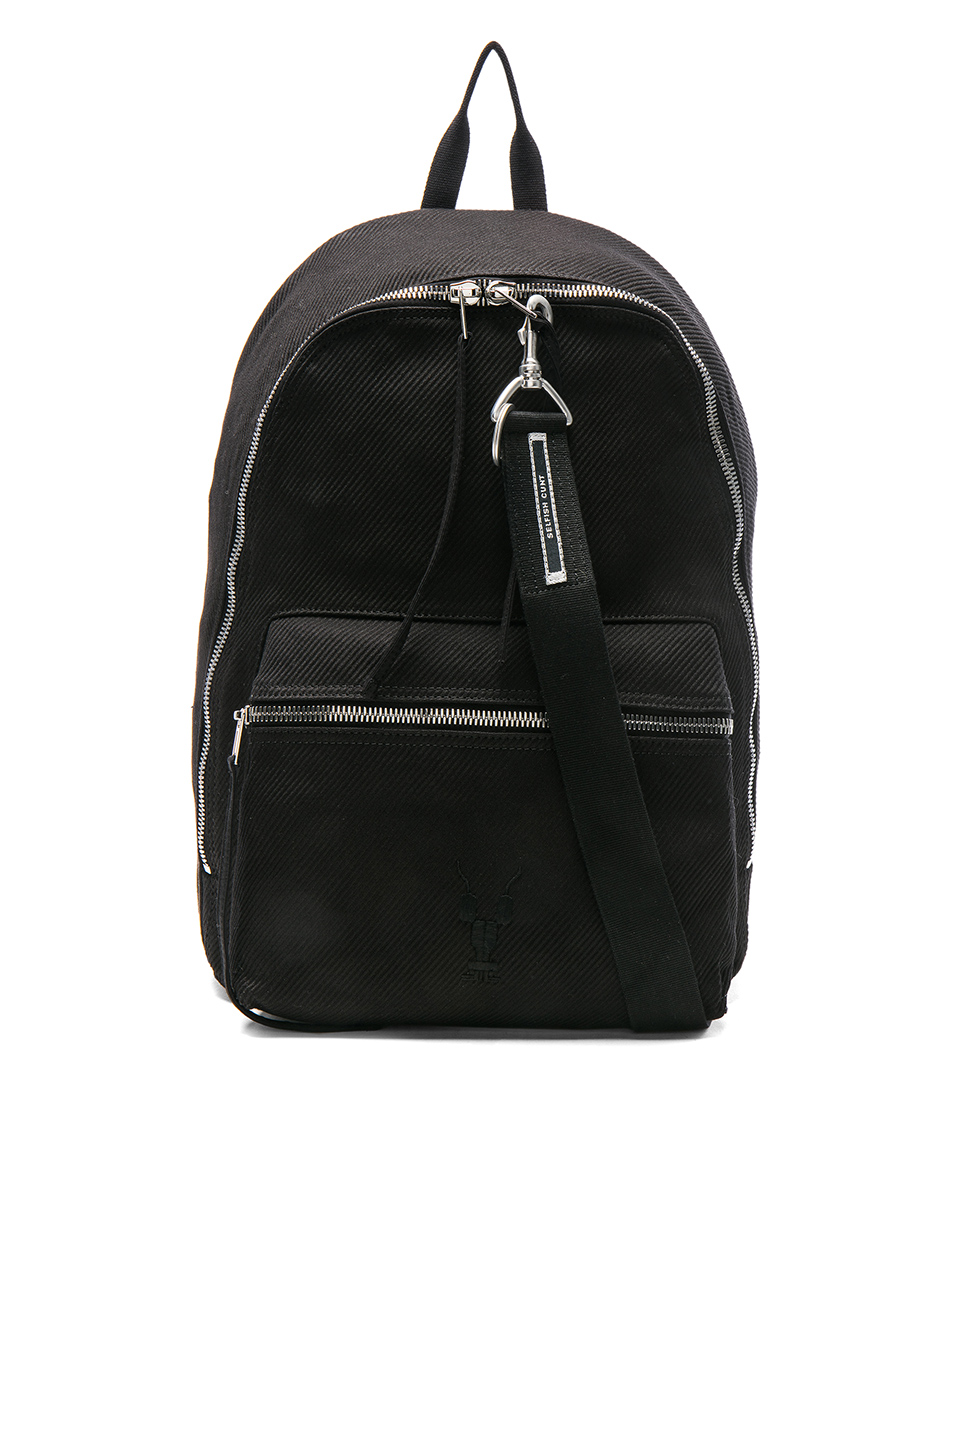 DRKSHDW by Rick Owens Zaino Backpack in Black